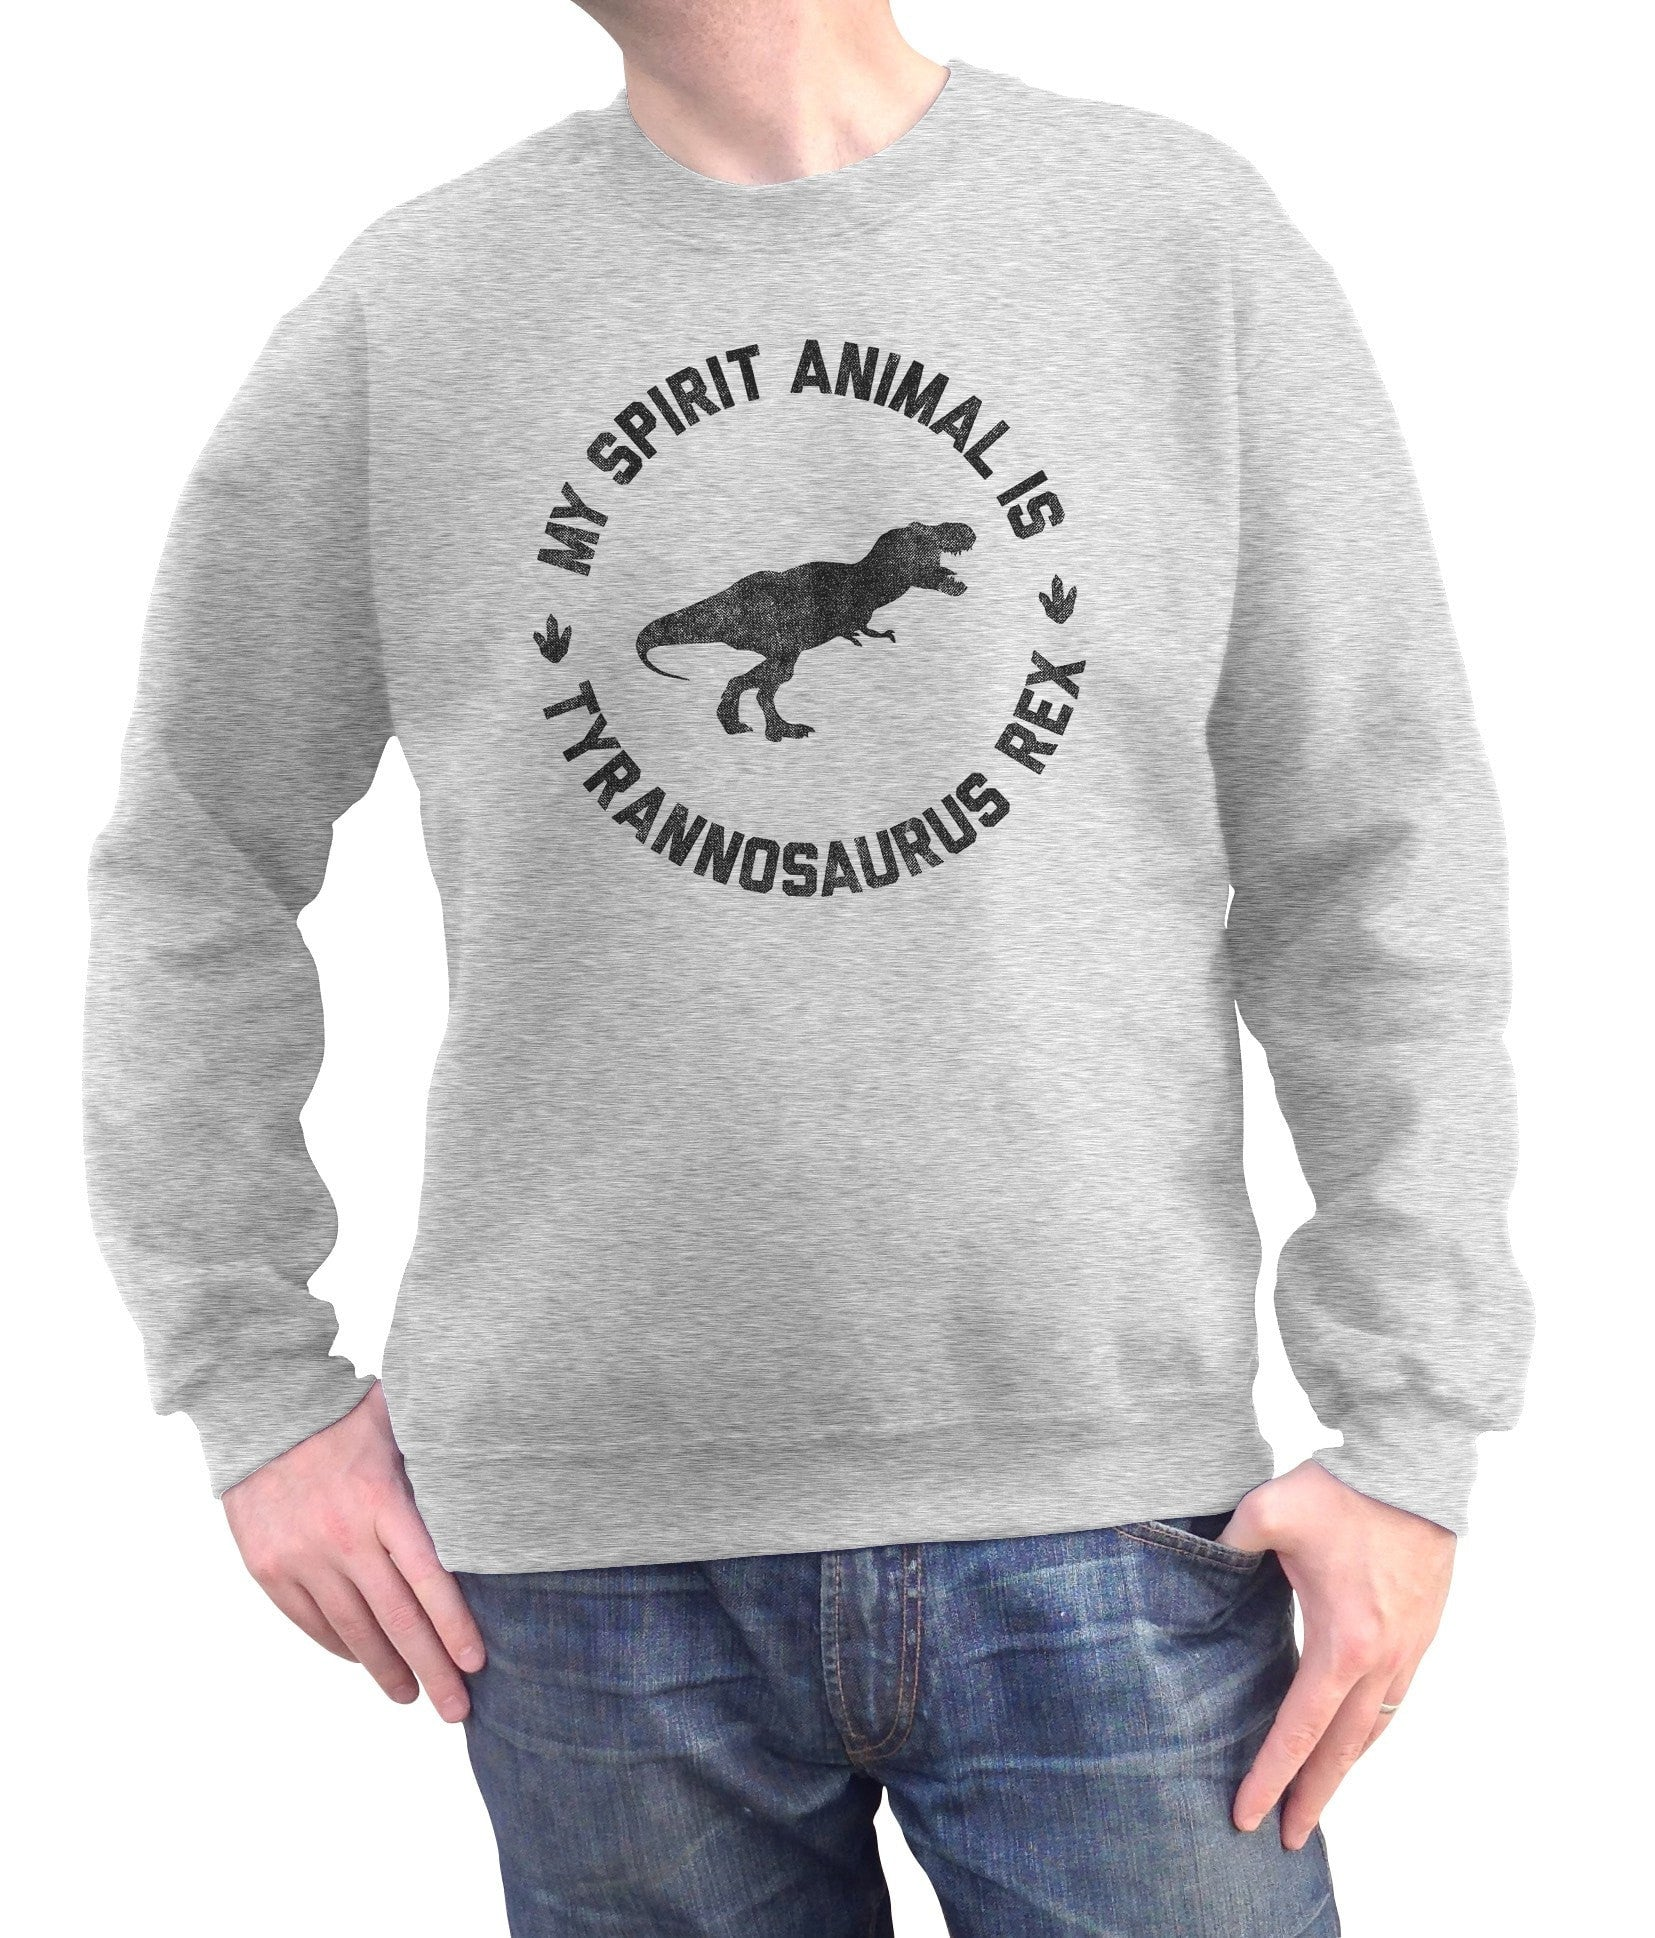 Unisex My Spirit Animal is T-Rex Sweatshirt